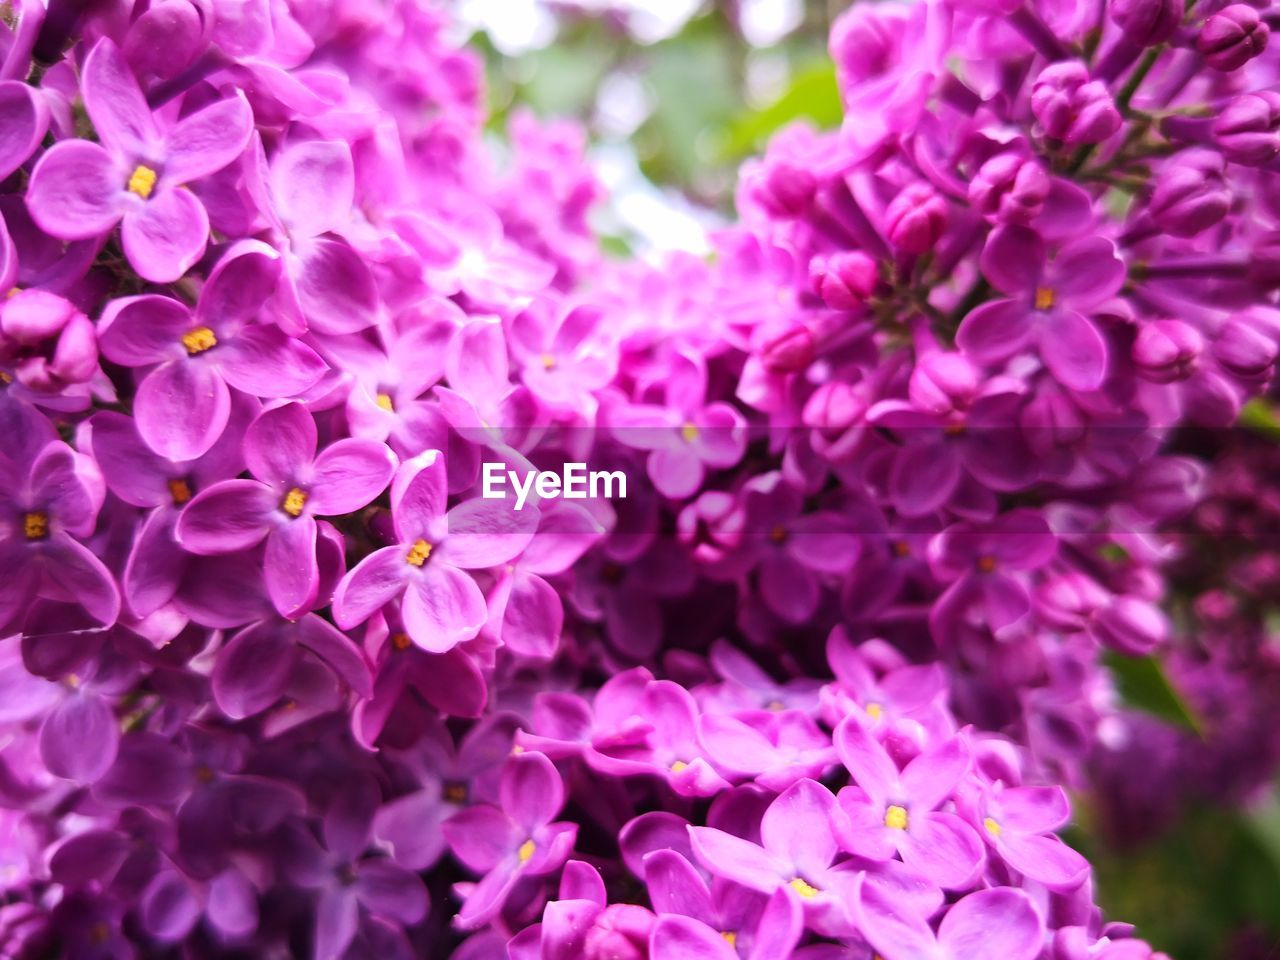 flower, flowering plant, vulnerability, petal, beauty in nature, fragility, freshness, plant, pink color, growth, close-up, nature, inflorescence, flower head, no people, outdoors, day, purple, blossom, selective focus, lilac, springtime, bunch of flowers, spring